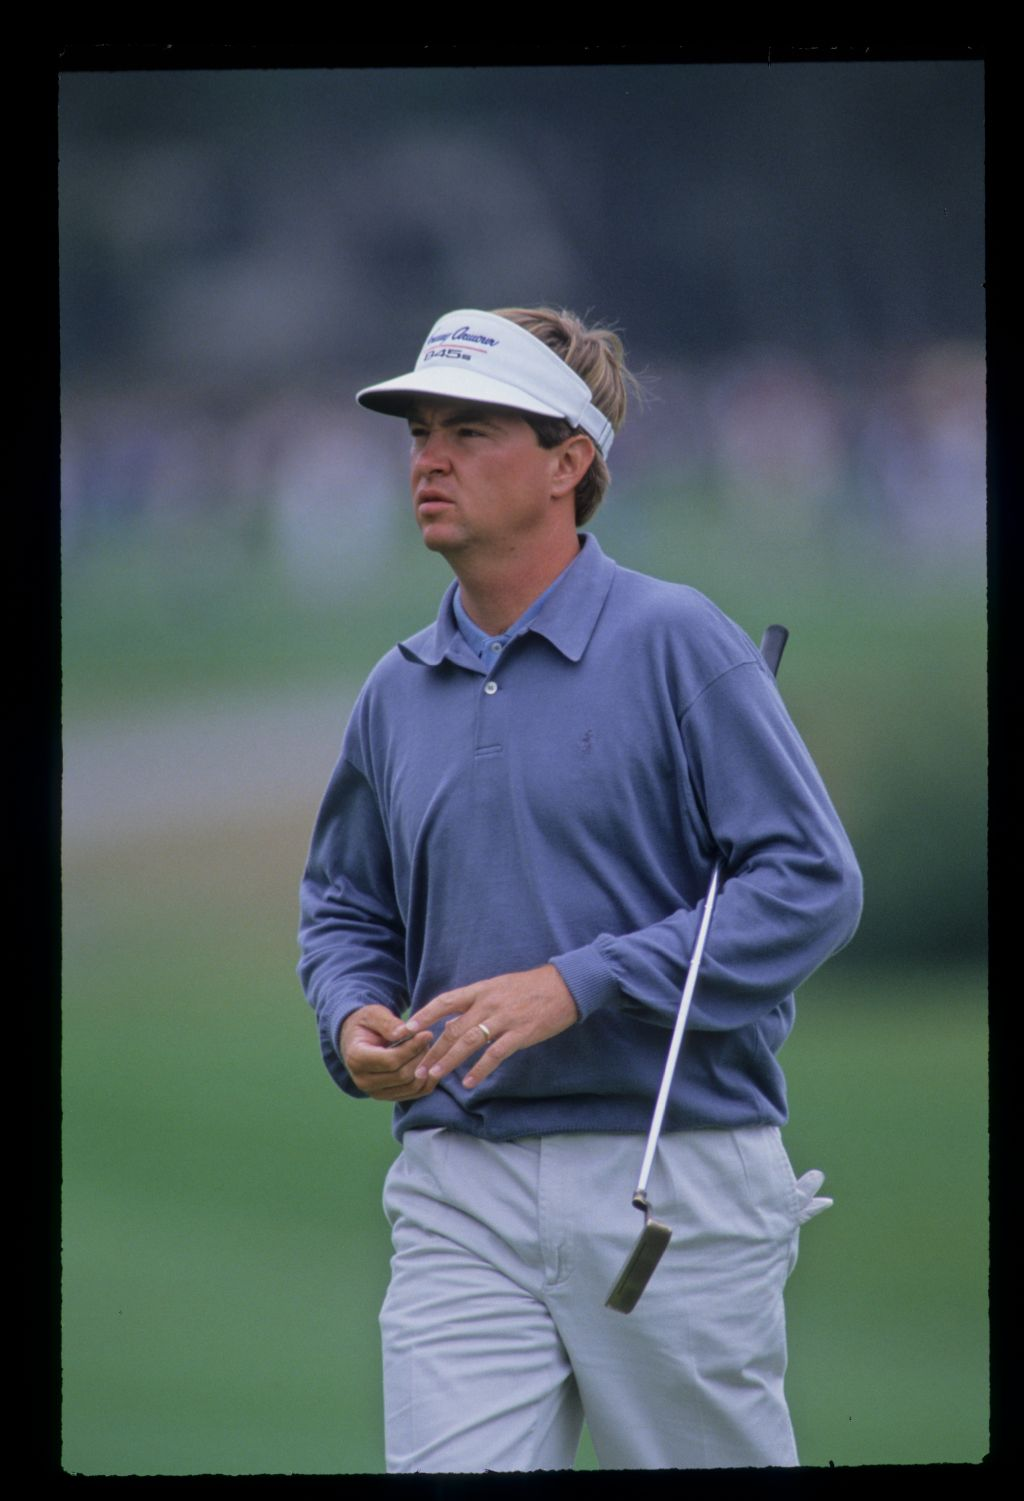 Davis Love III on the green during the 1992 US Open